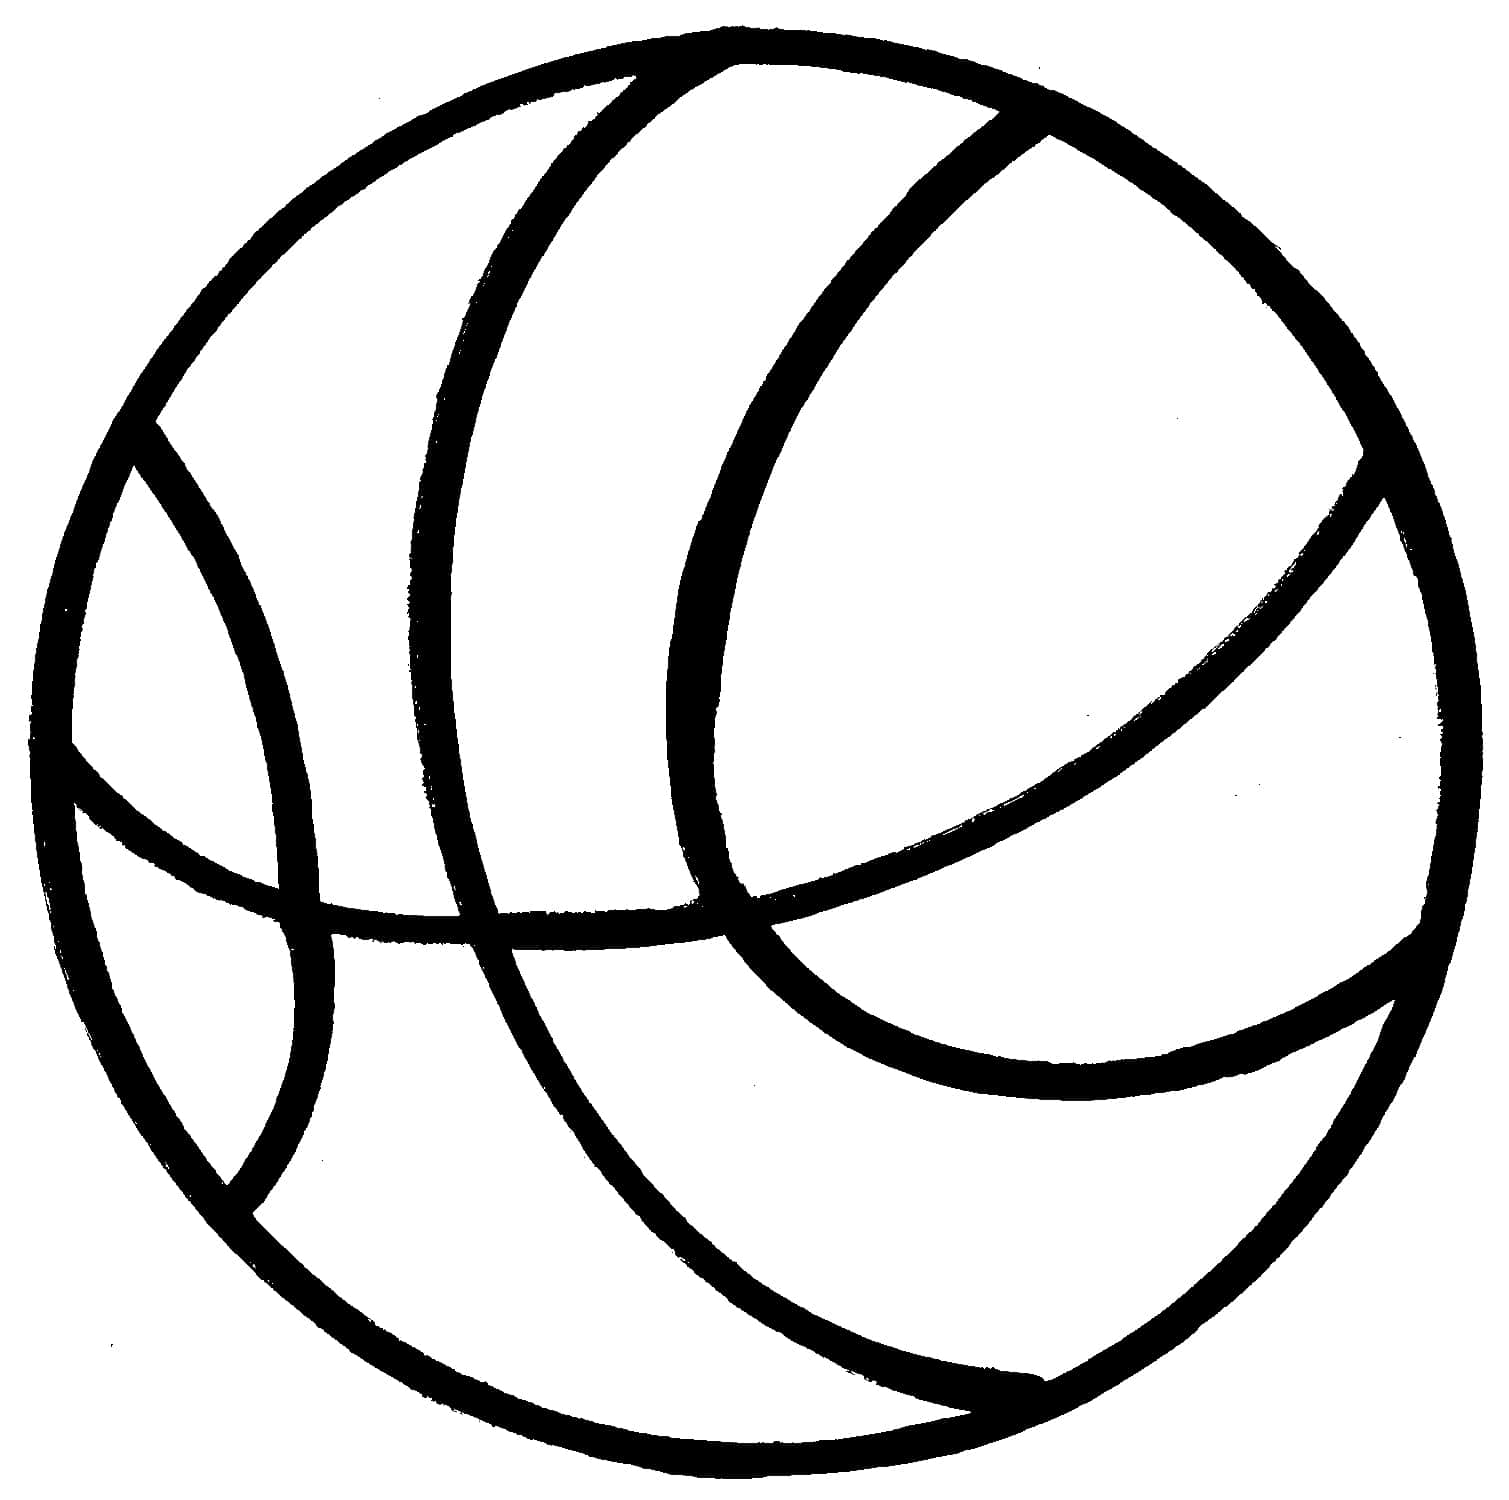 basketball-hoop-clipart-black-and-white-prism-clipart-RiAApadiL